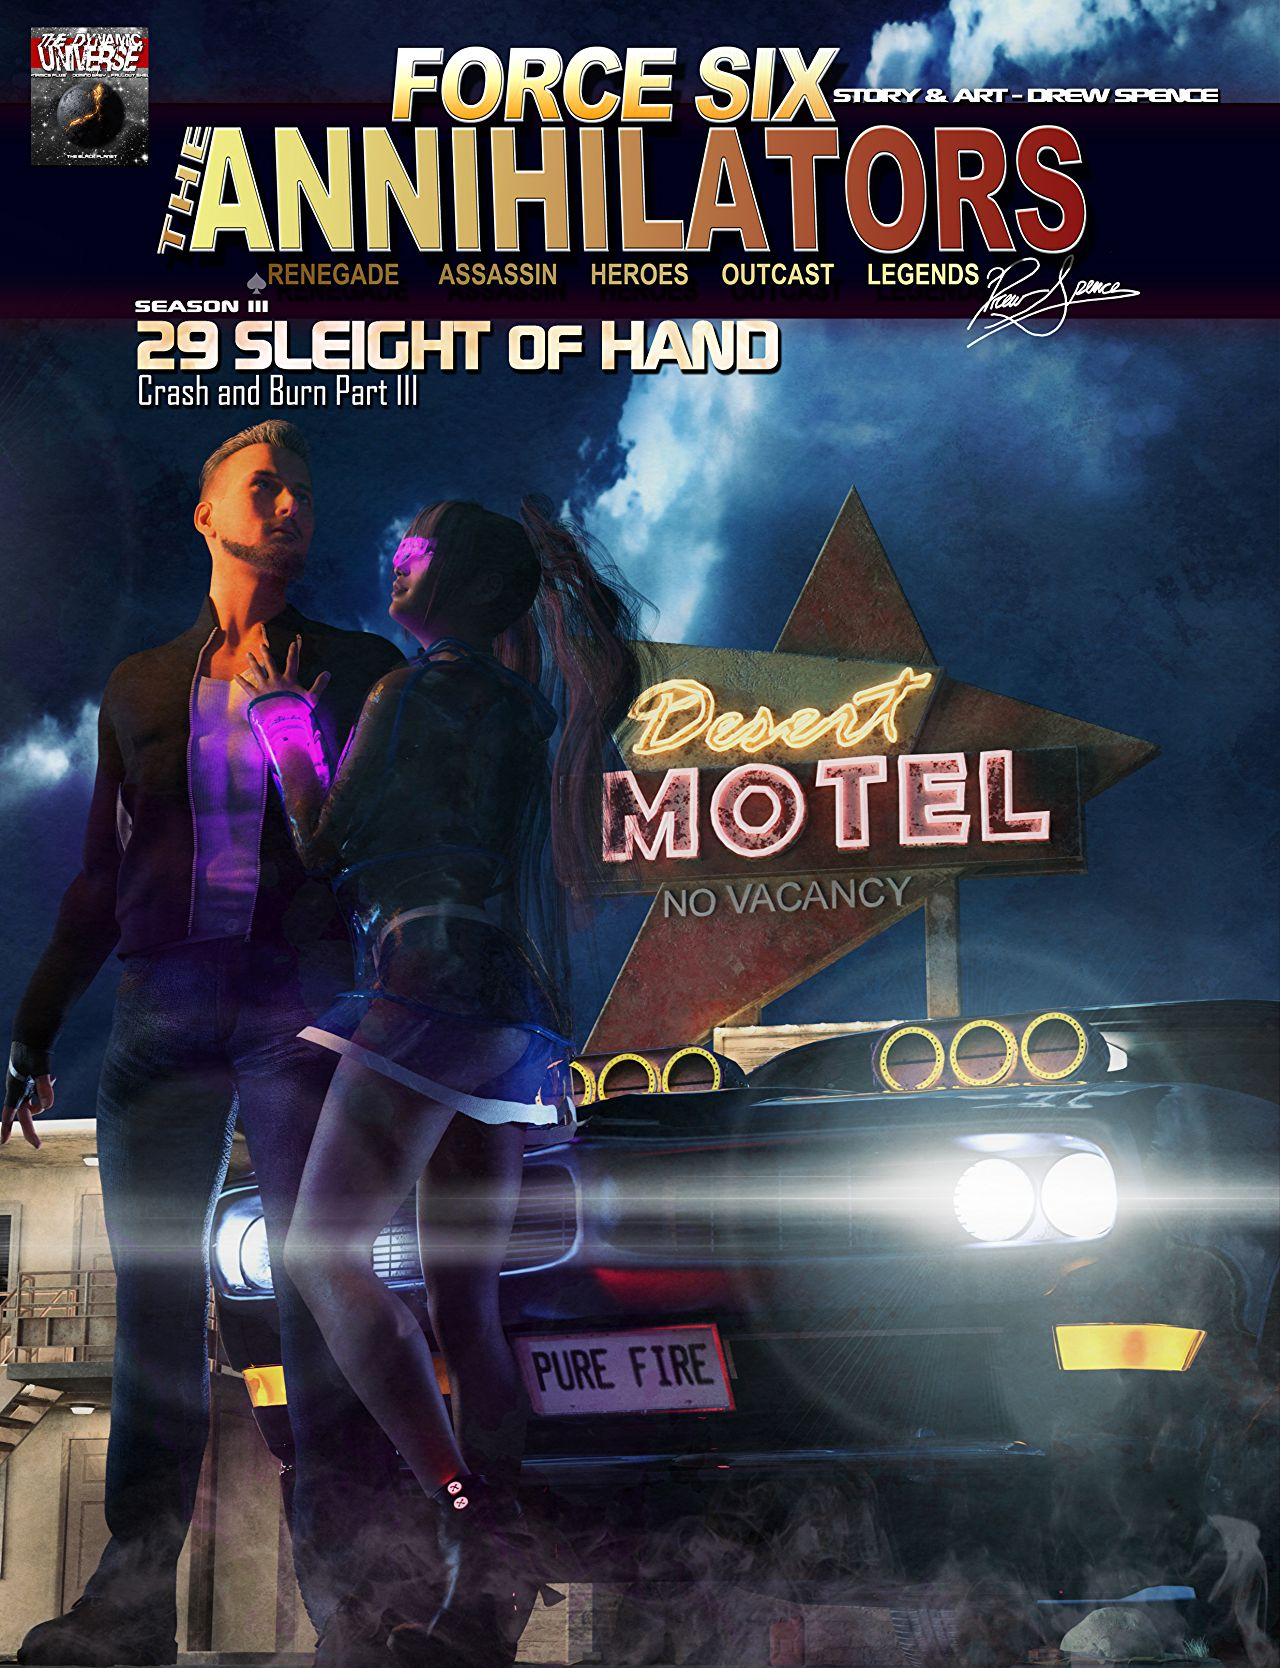 Force Six, The Annihilators episode 29 cover